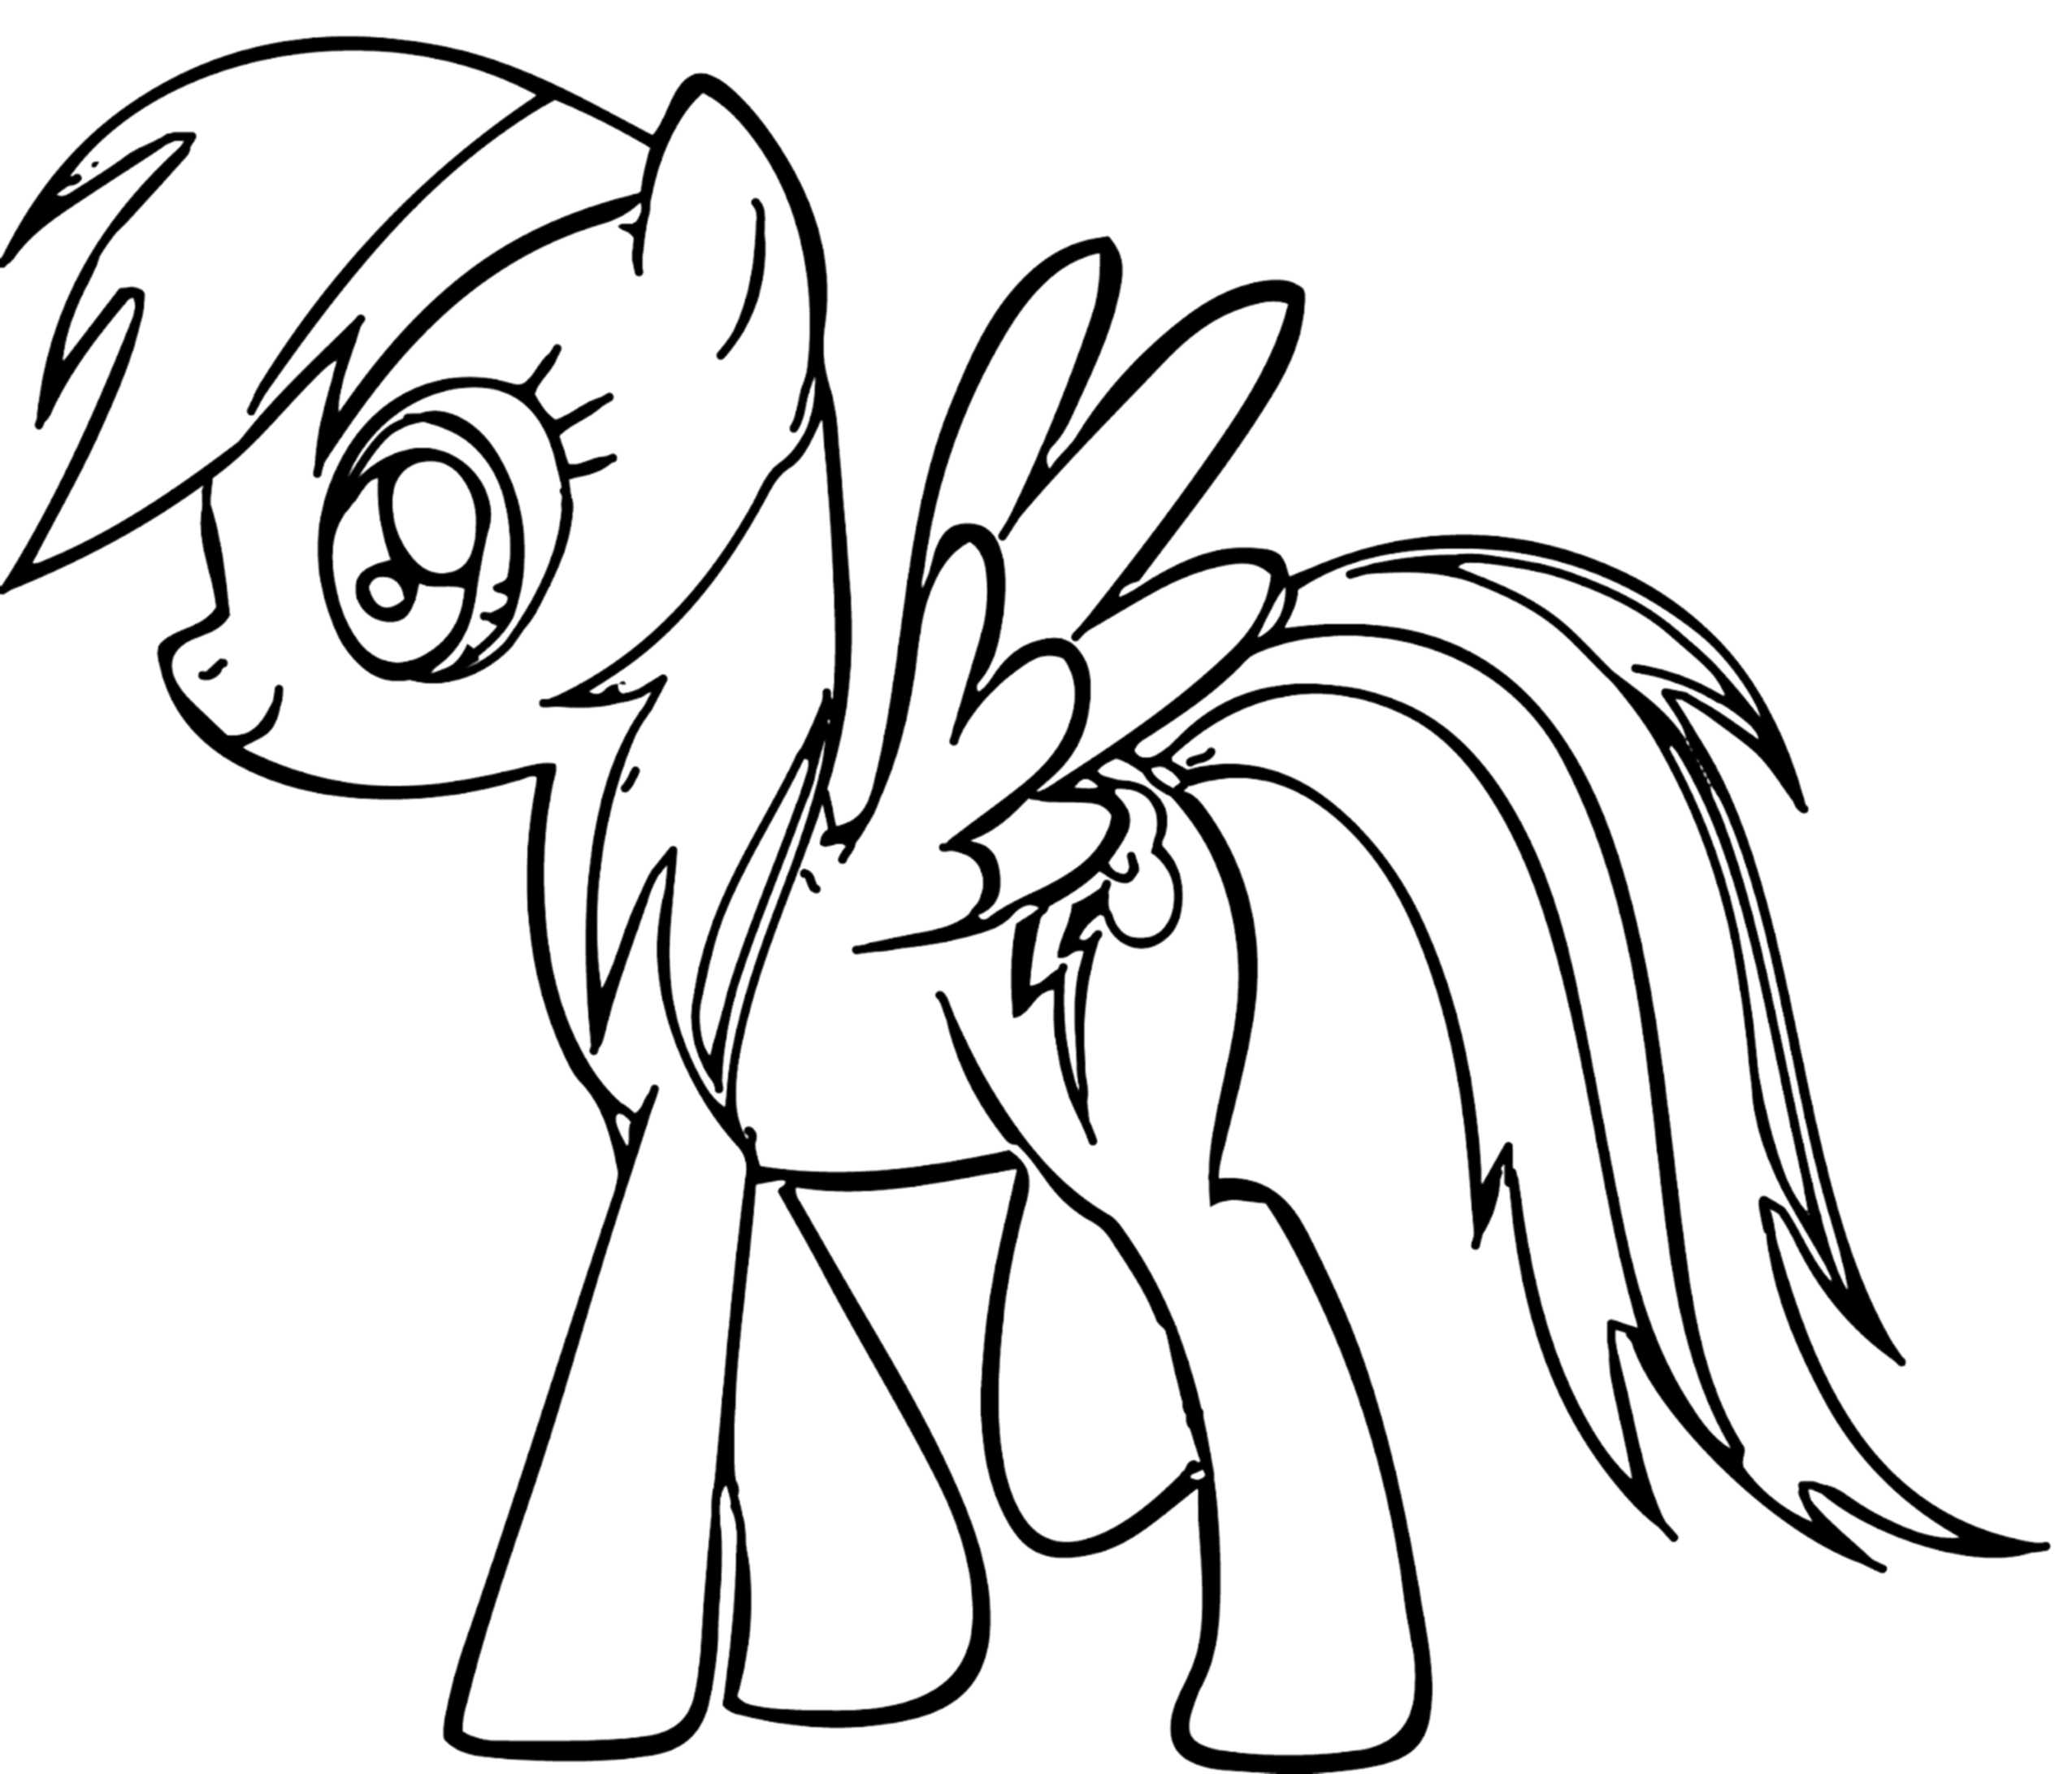 Rainbow dash coloring pages best coloring pages for kids for Coloring page rainbow